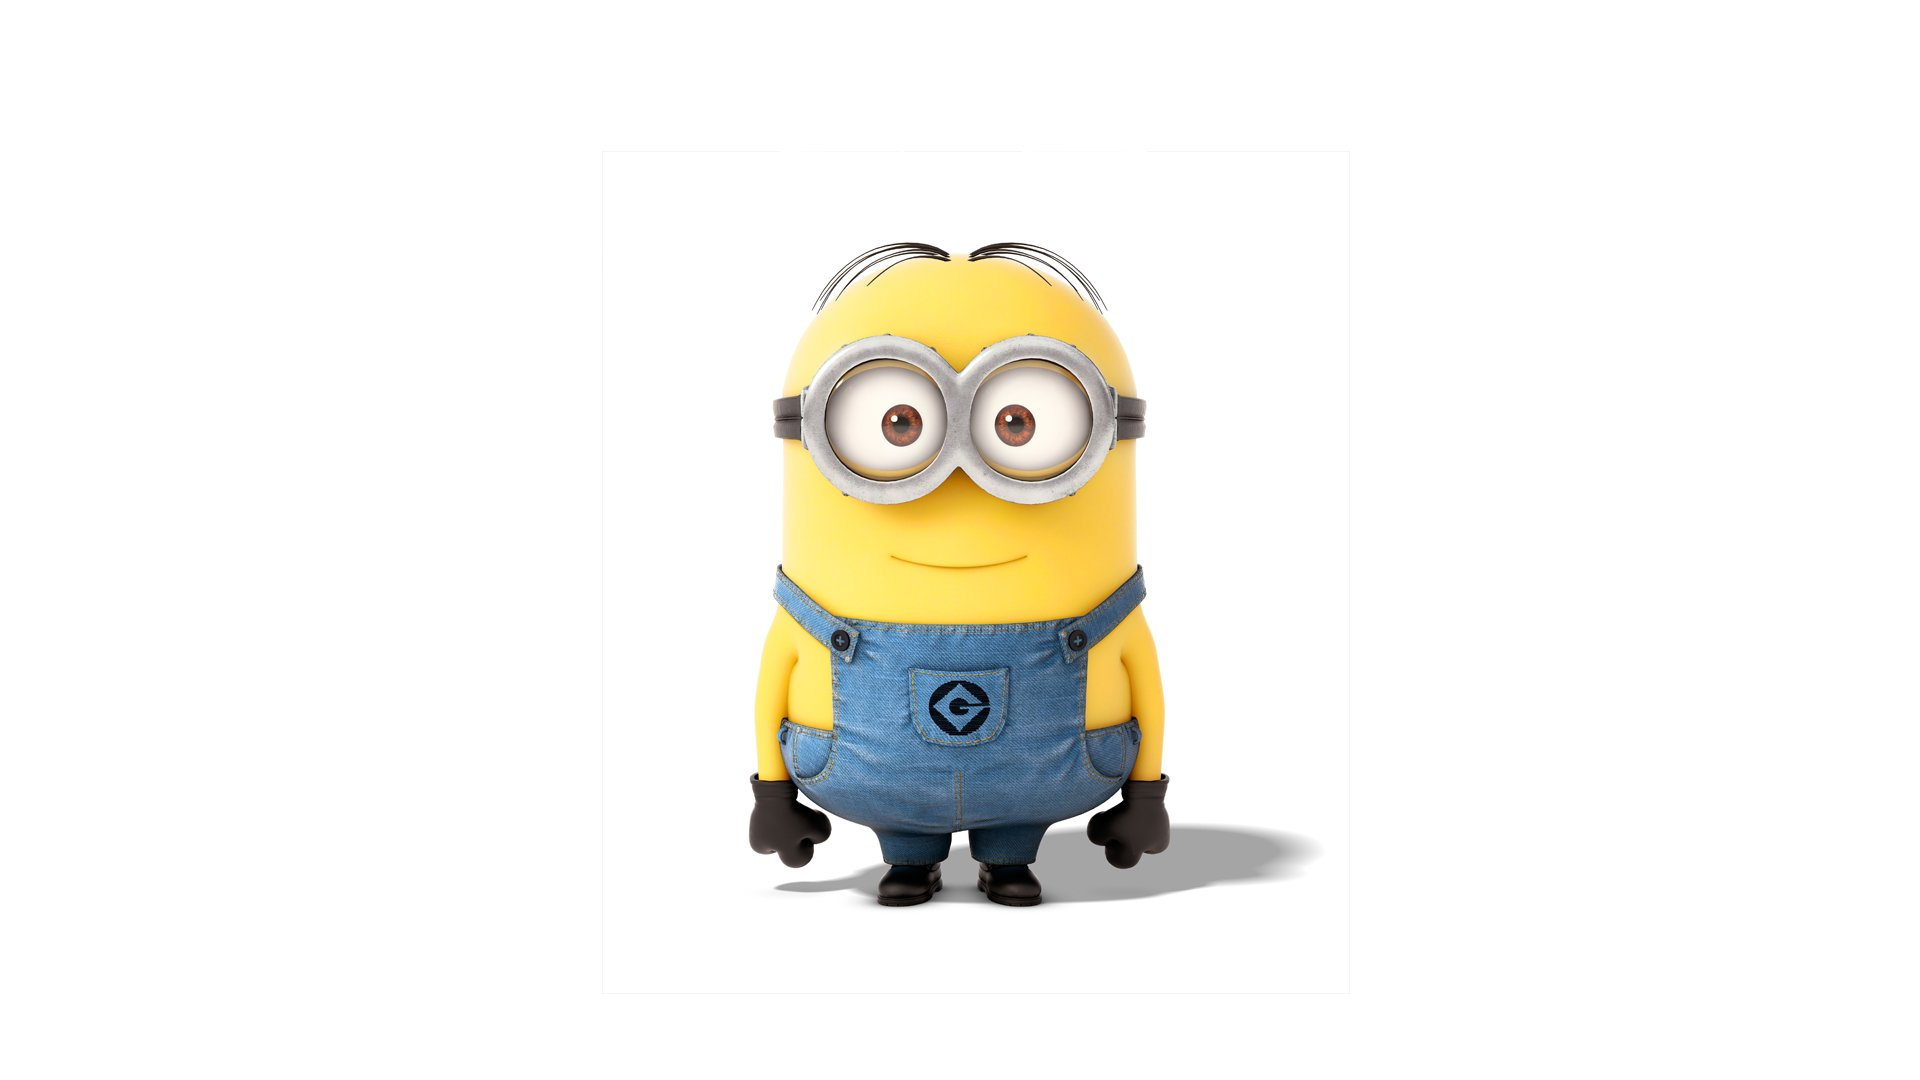 minions hd wallpaper minions despicable me hd wallpaper 1920x1080